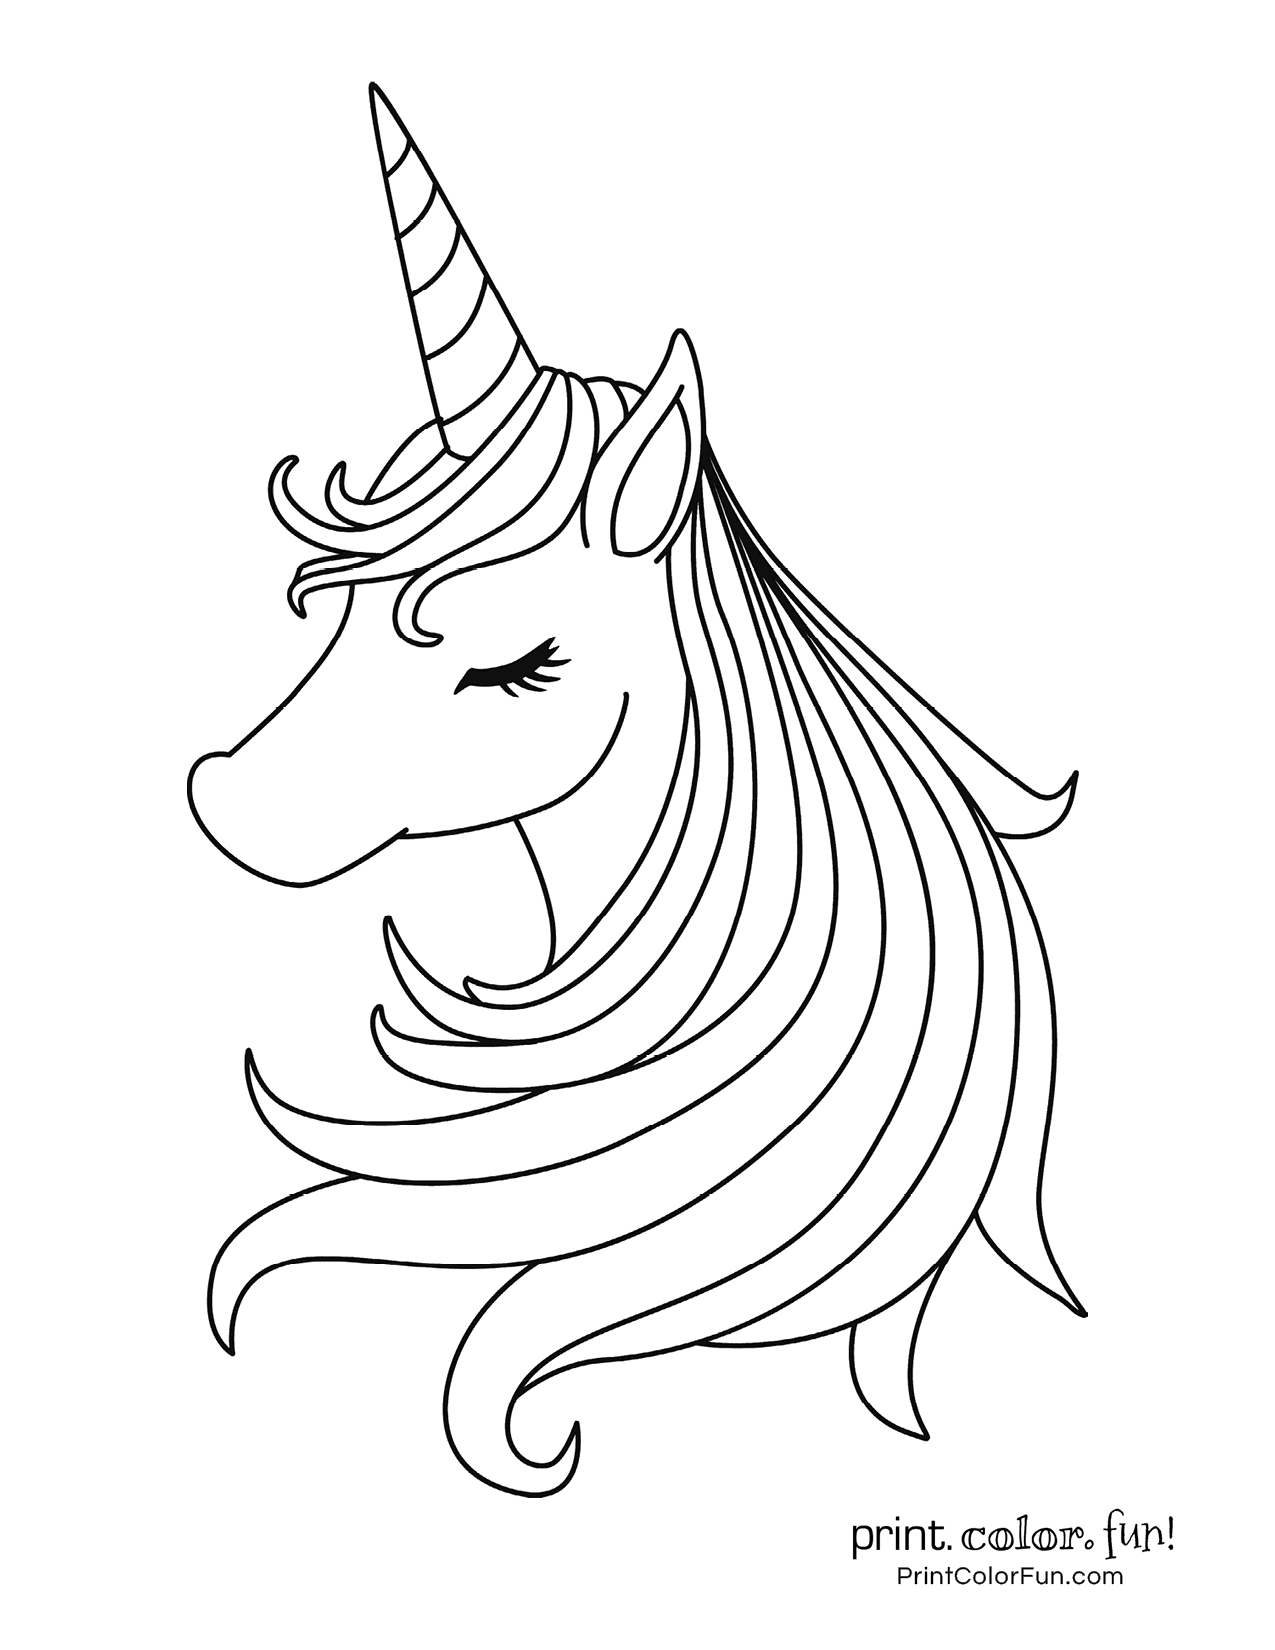 100 Magical Unicorn Coloring Pages The Ultimate Free Printable Collection At Print Colo Unicorn Coloring Pages Puppy Coloring Pages Mermaid Coloring Pages